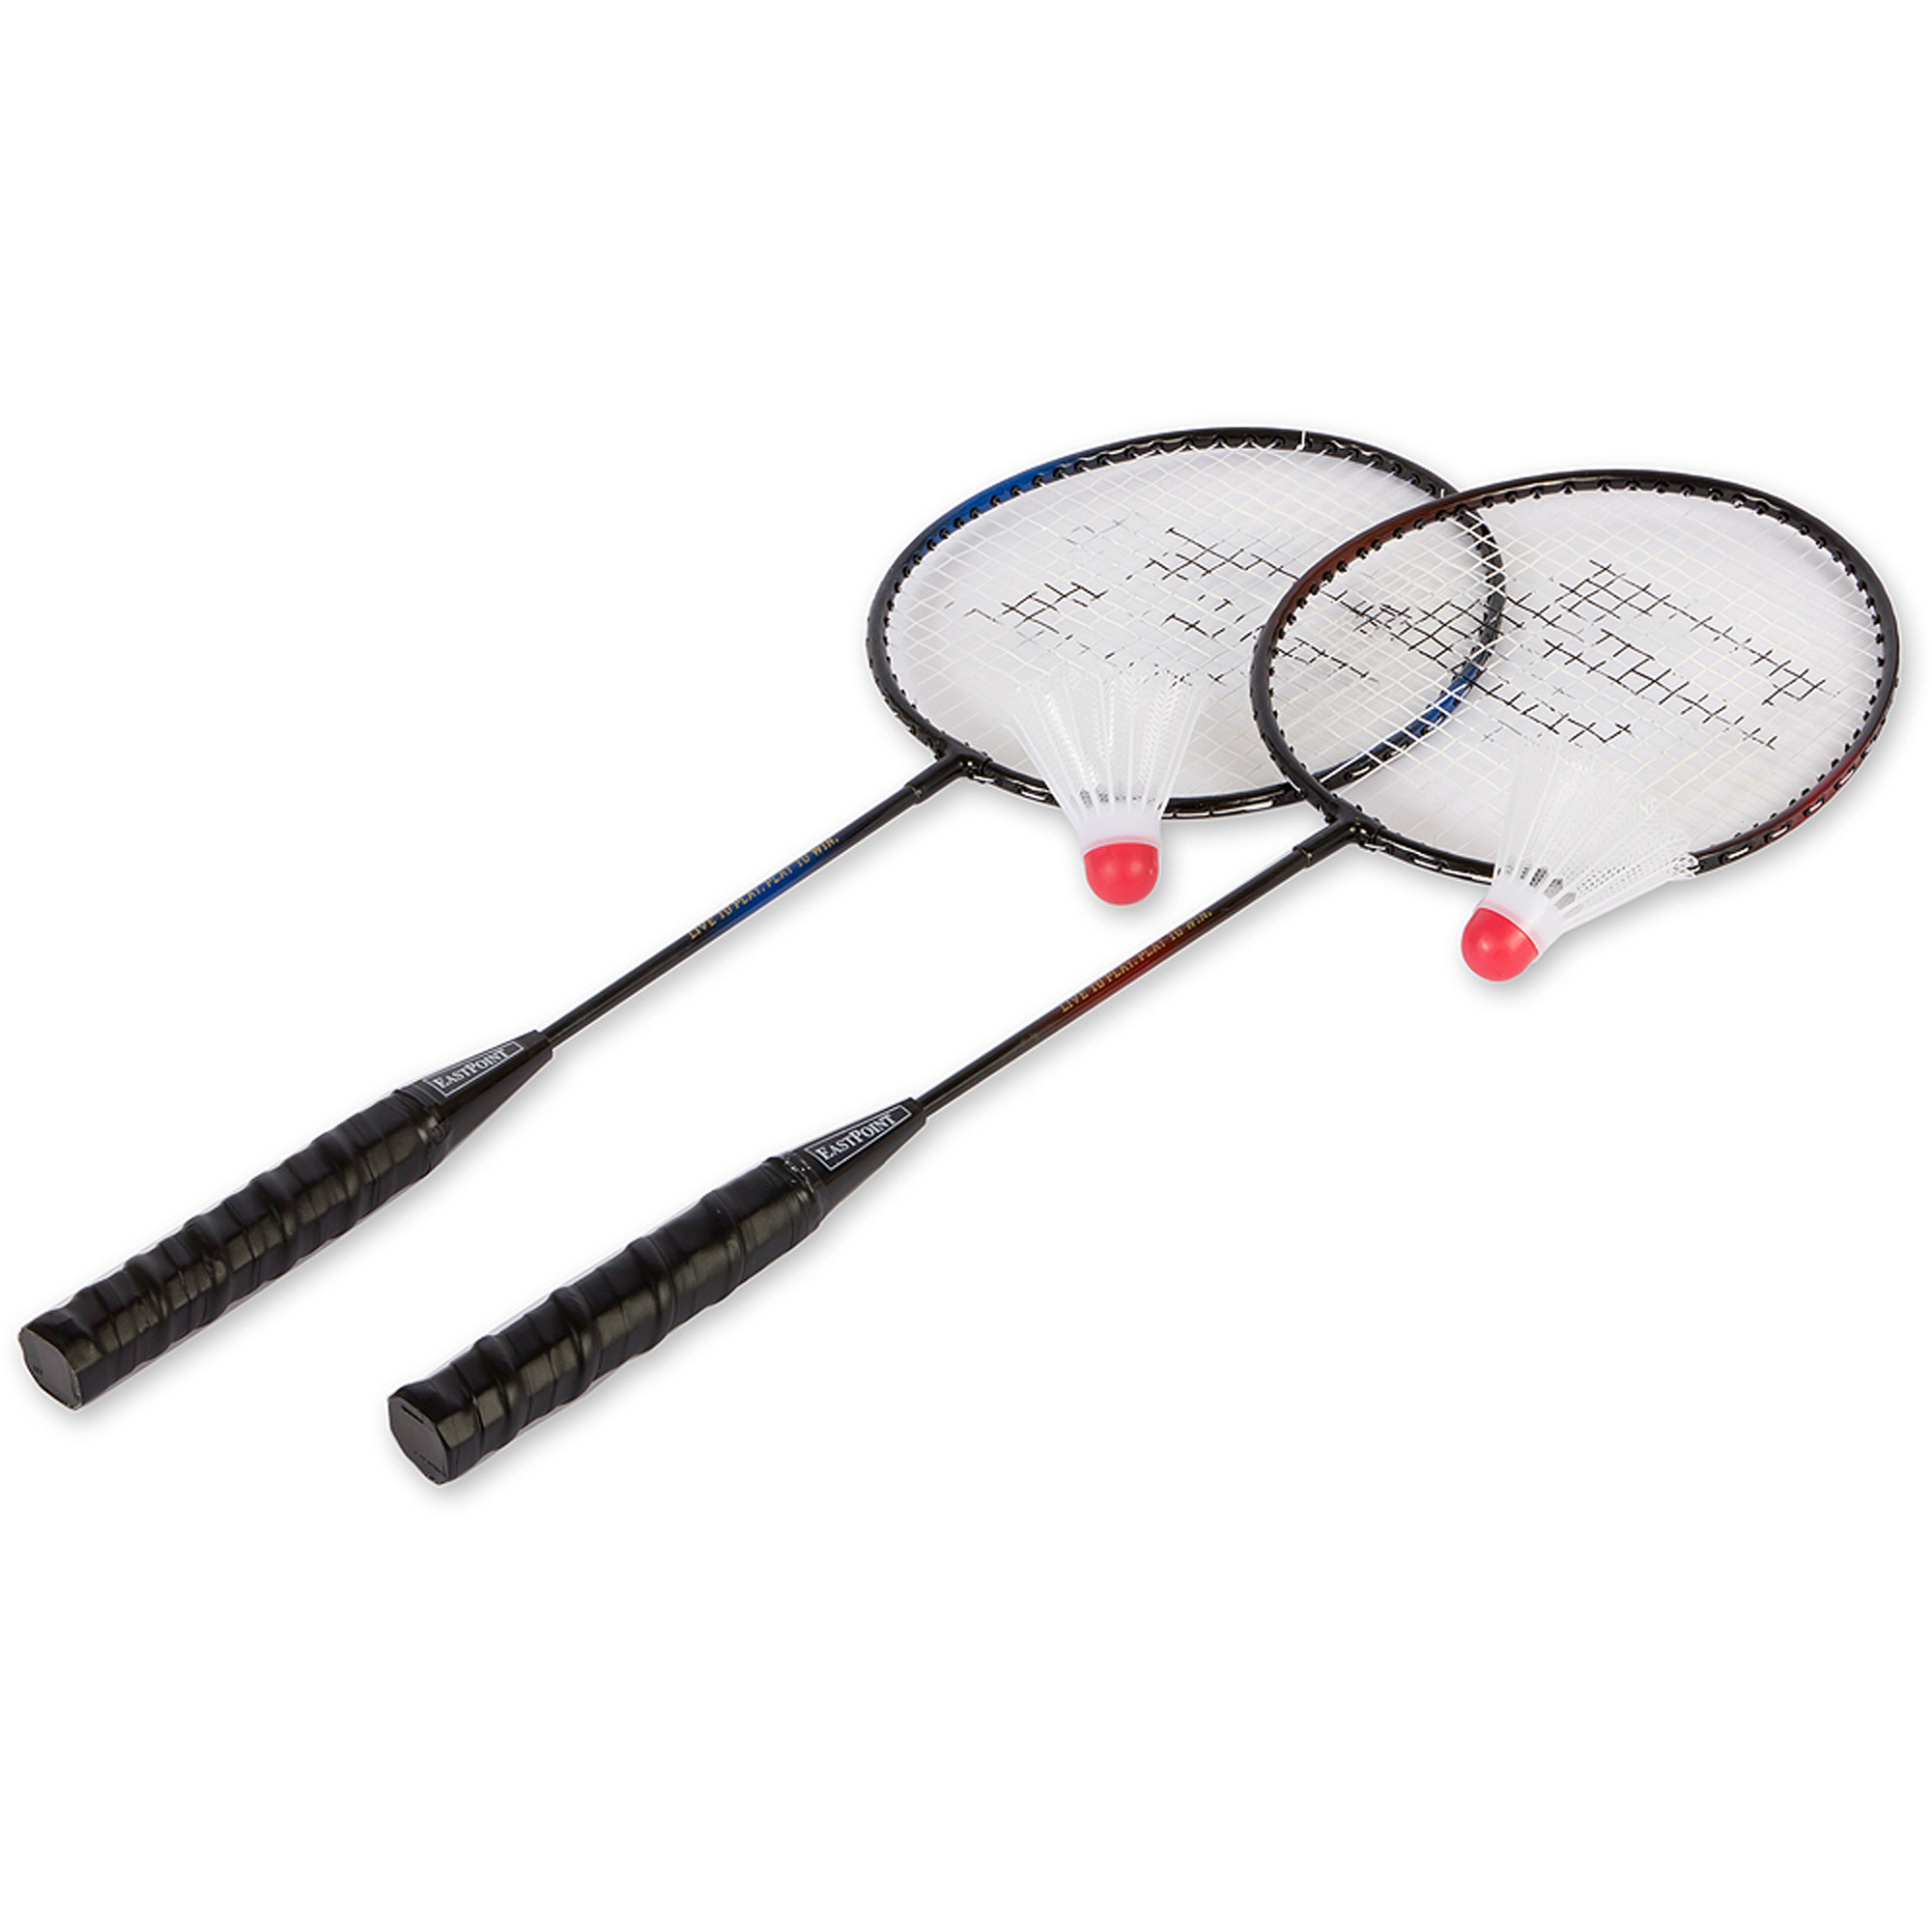 EastPoint Sports 2-Player Badminton Racket Set